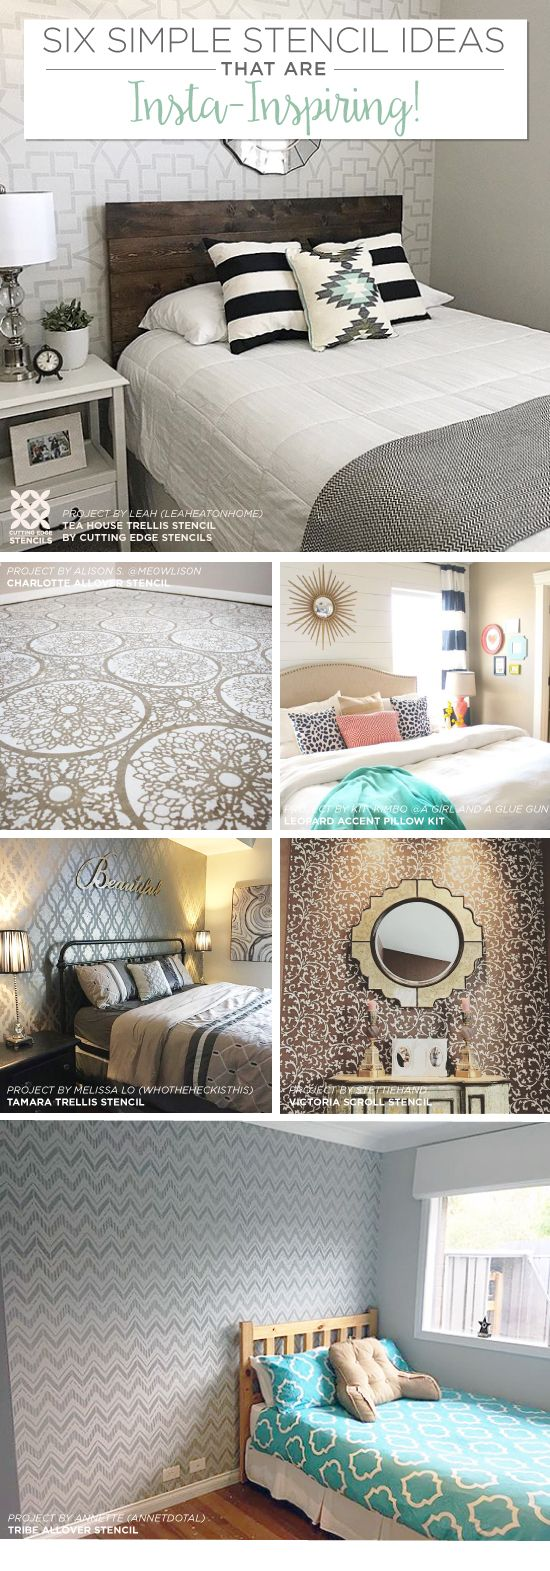 363 best Wall Treatment images on Pinterest | Wall papers, Backdrops Inexpensive Bedroom Decorating Ideas Html on inexpensive lighting ideas, inexpensive bedroom flooring ideas, inexpensive window covering ideas, inexpensive bedroom furniture, hipster bedroom ideas, affordable bedroom ideas, cheap bedroom ideas, inexpensive kitchen ideas, bedroom paint ideas, inexpensive master bedroom ideas, inexpensive bedroom storage ideas, inexpensive wall decor ideas, inexpensive girls bedroom ideas, inexpensive living room ideas, inexpensive bedroom organization, inexpensive guest bedroom ideas, inexpensive bedroom bedding, inexpensive home ideas, inexpensive furniture ideas, inexpensive interior door ideas,